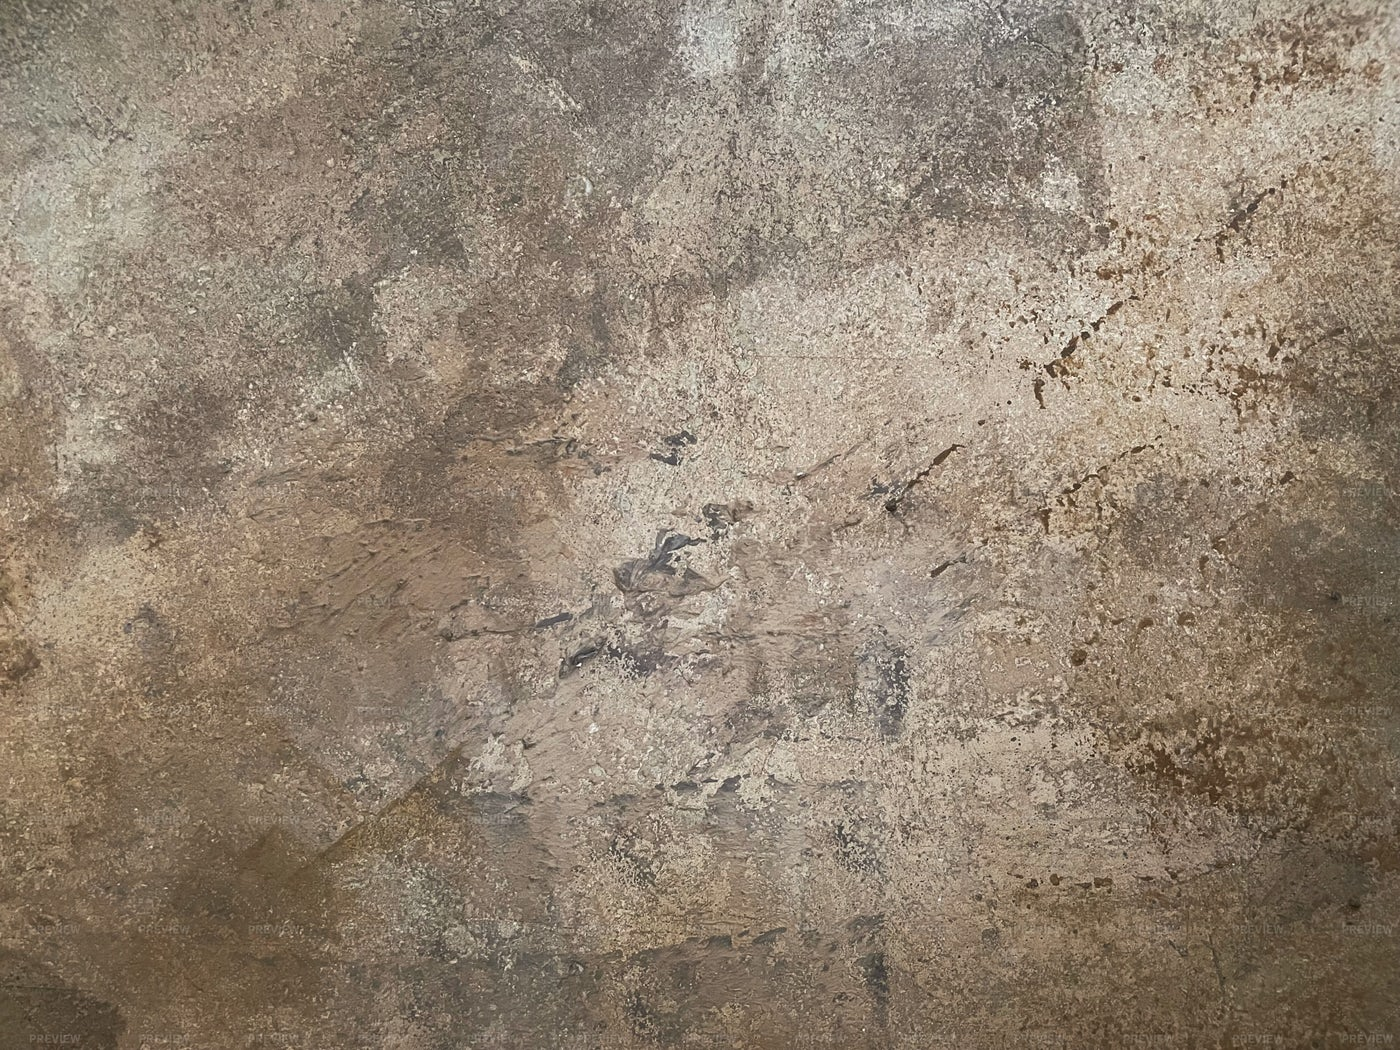 Abstract Grunge Background: Stock Photos